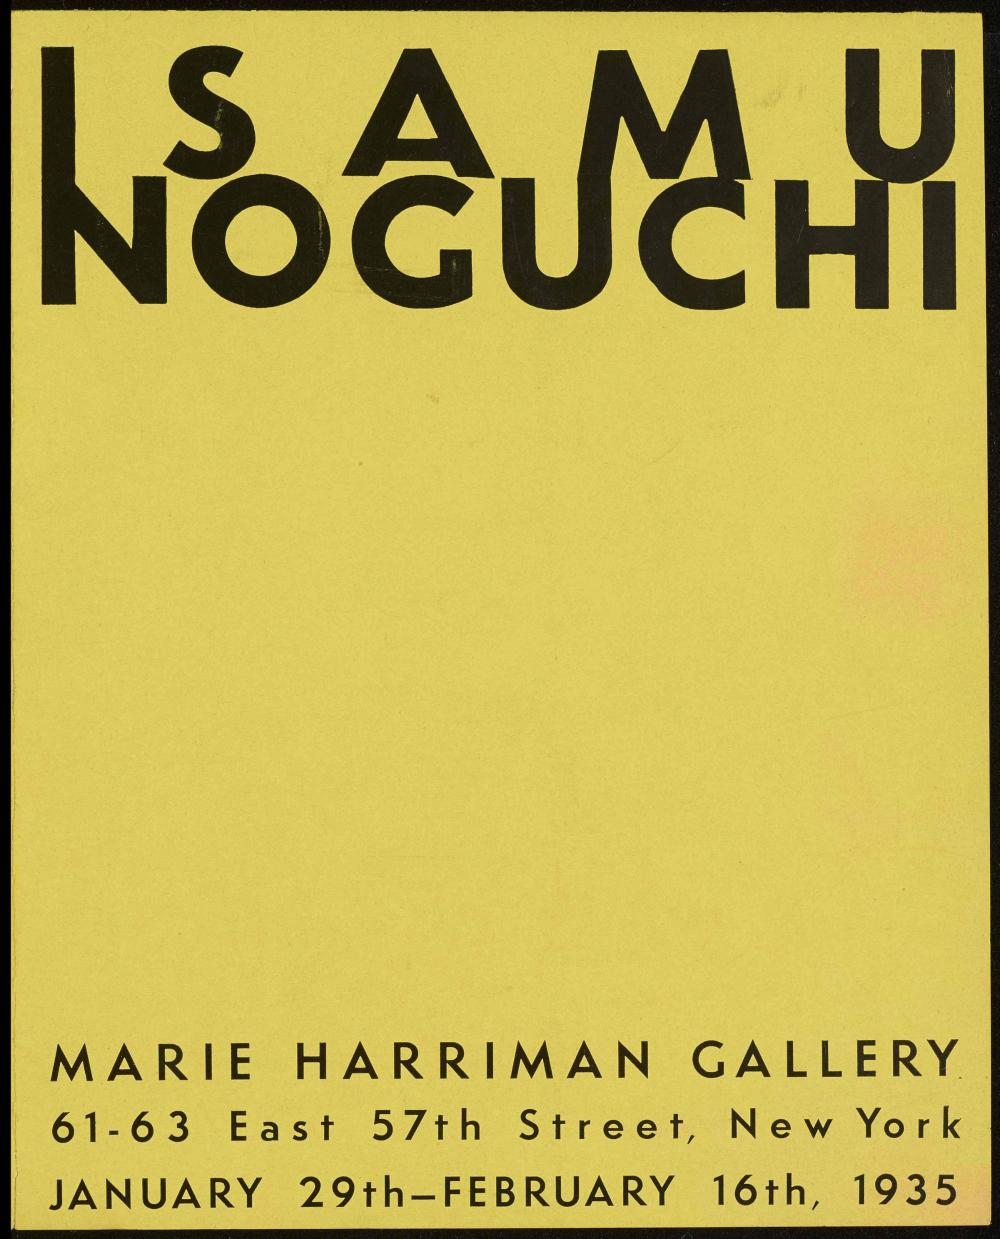 Marie Harriman Gallery exhibition brochure